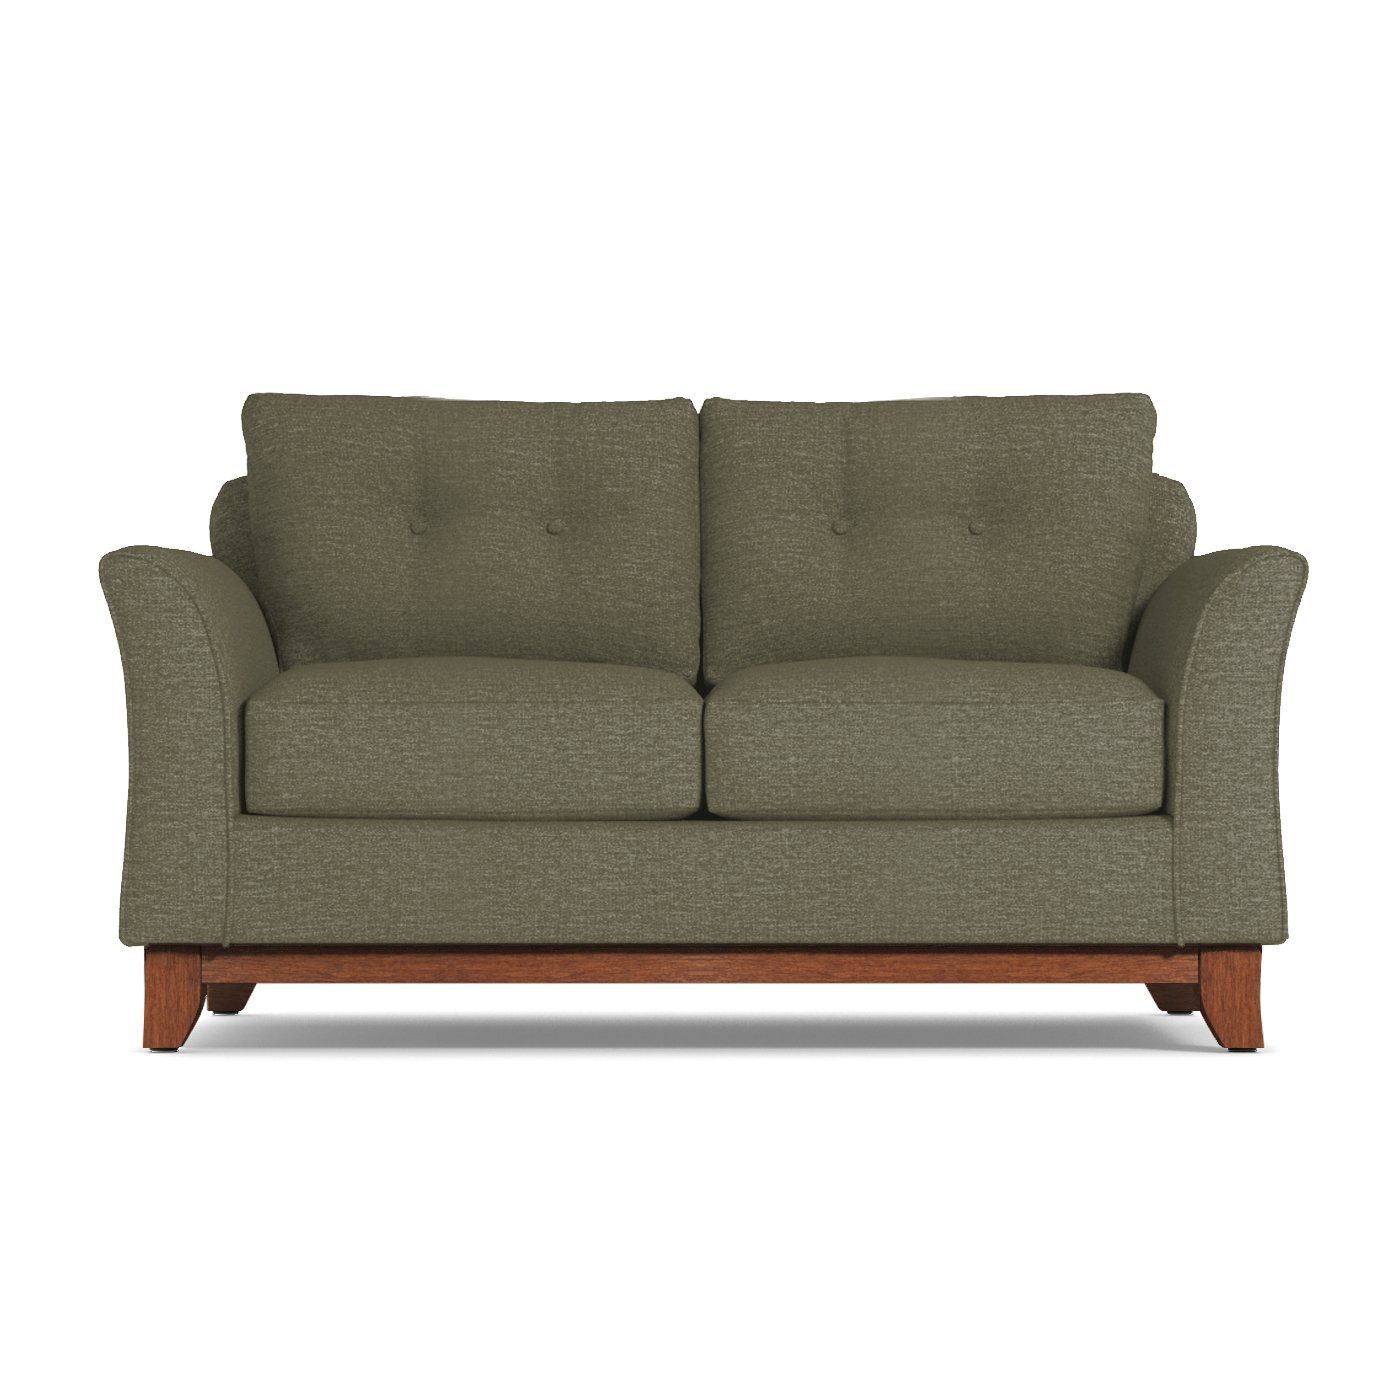 Marco Apartment Size Sleeper Sofa - Choice of Fabrics - Apt2B